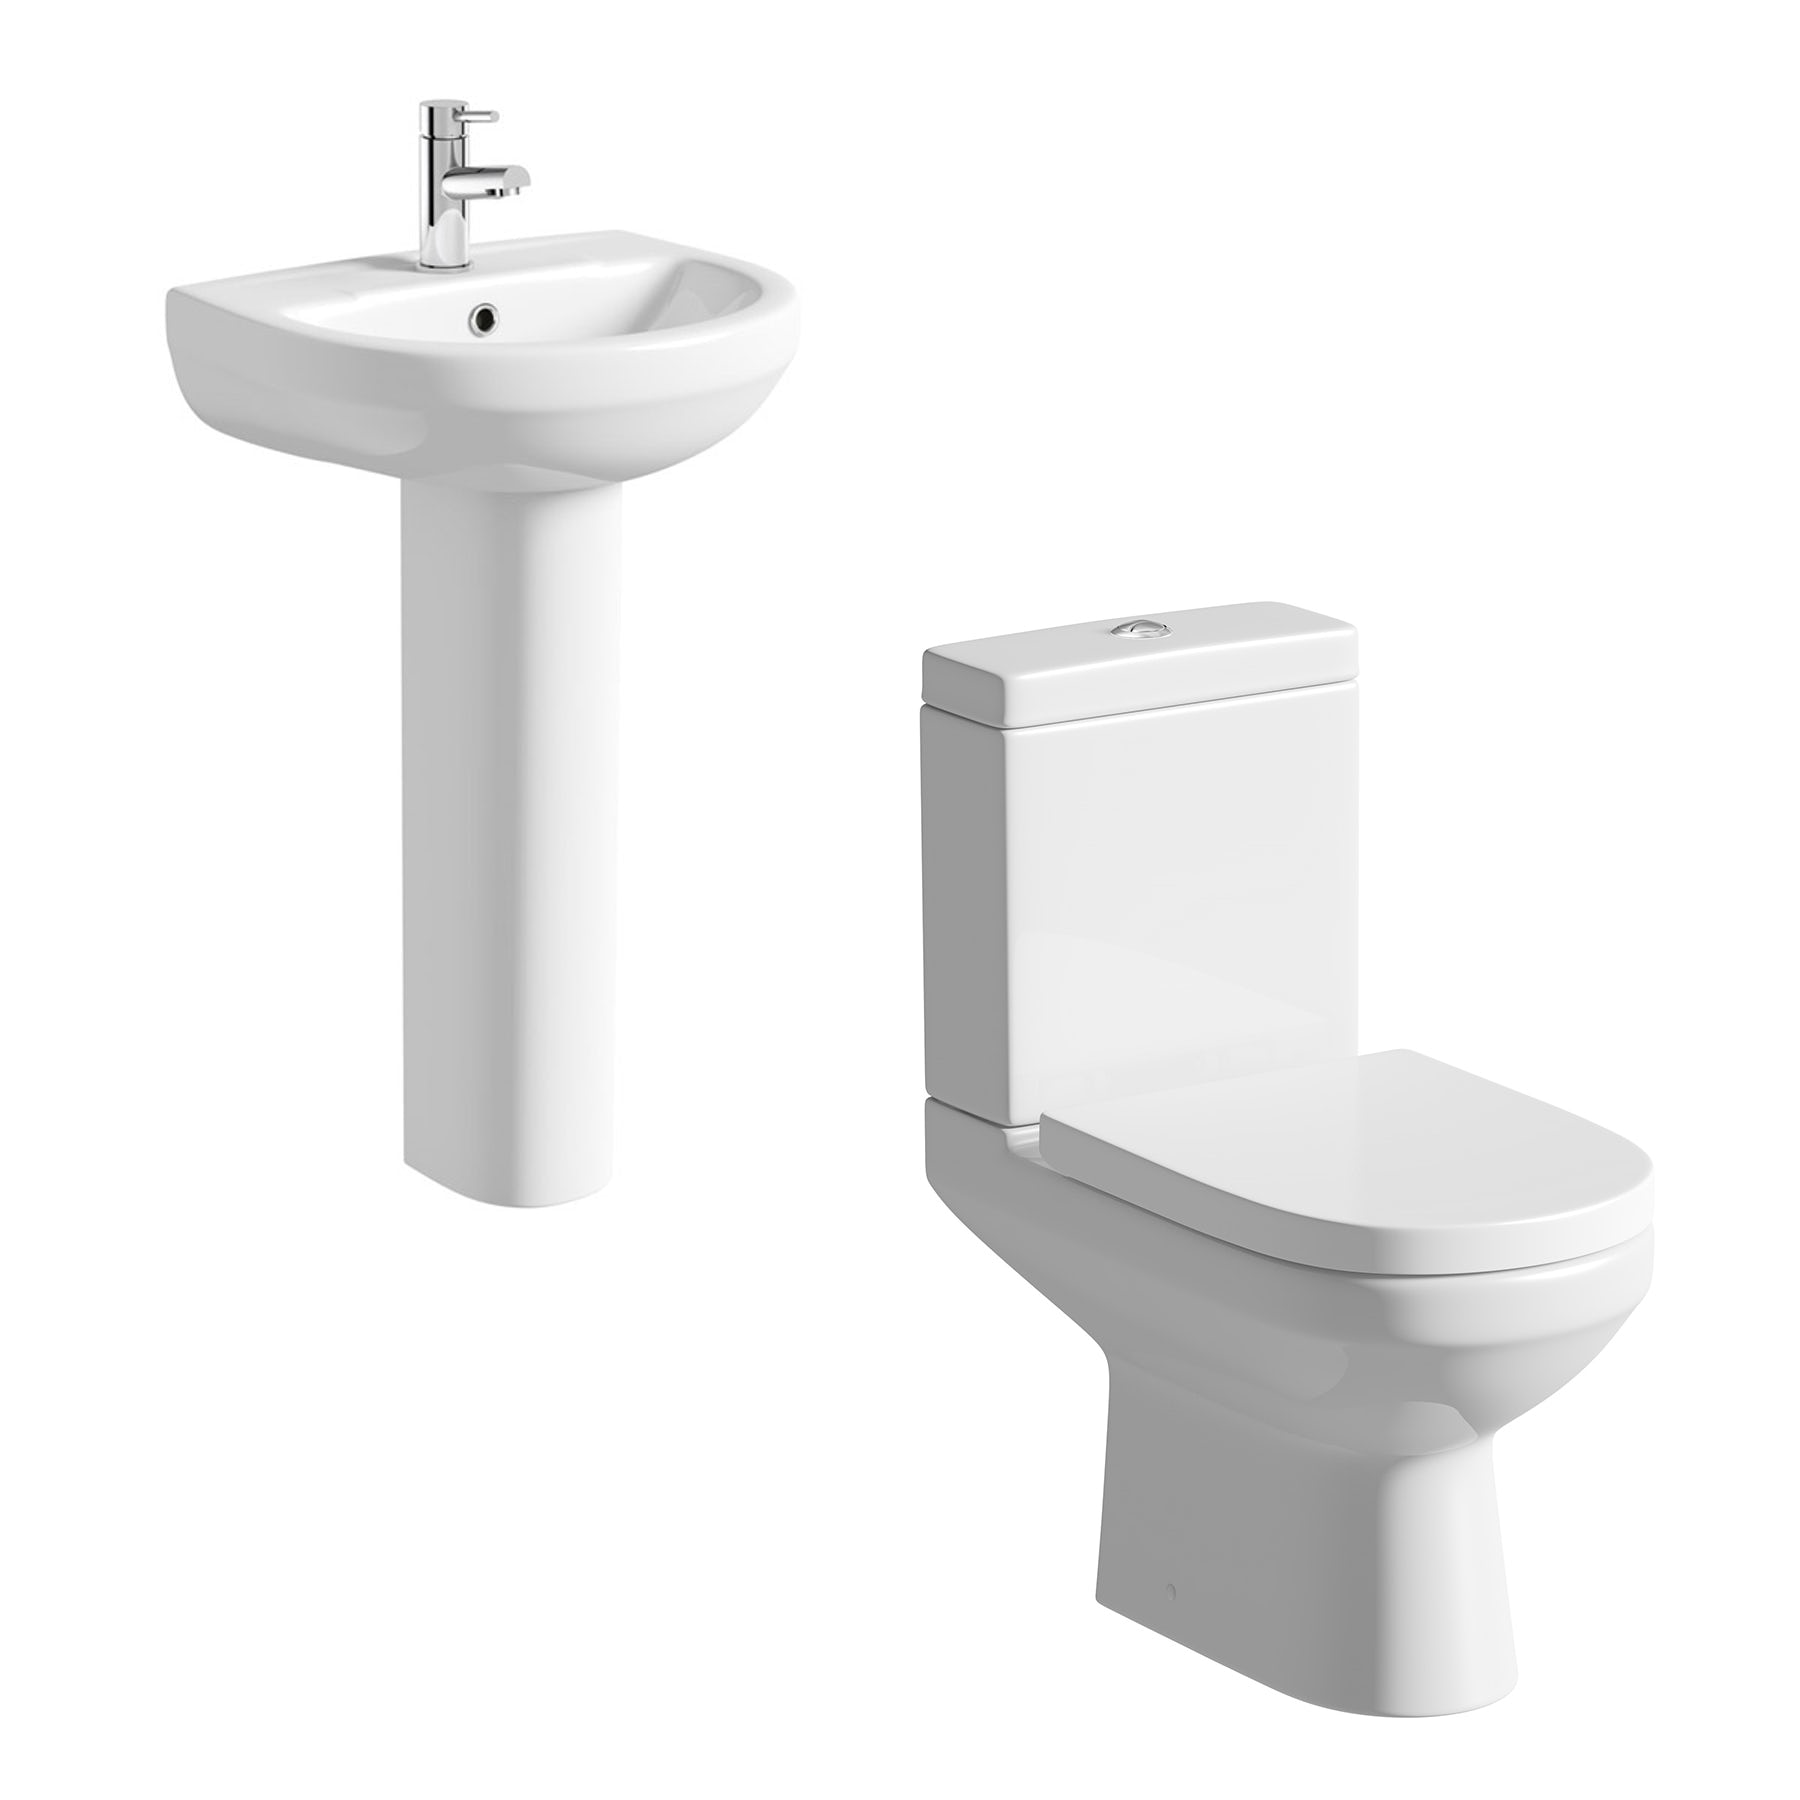 Orchard Balance cloakroom suite with full pedestal basin 540mm